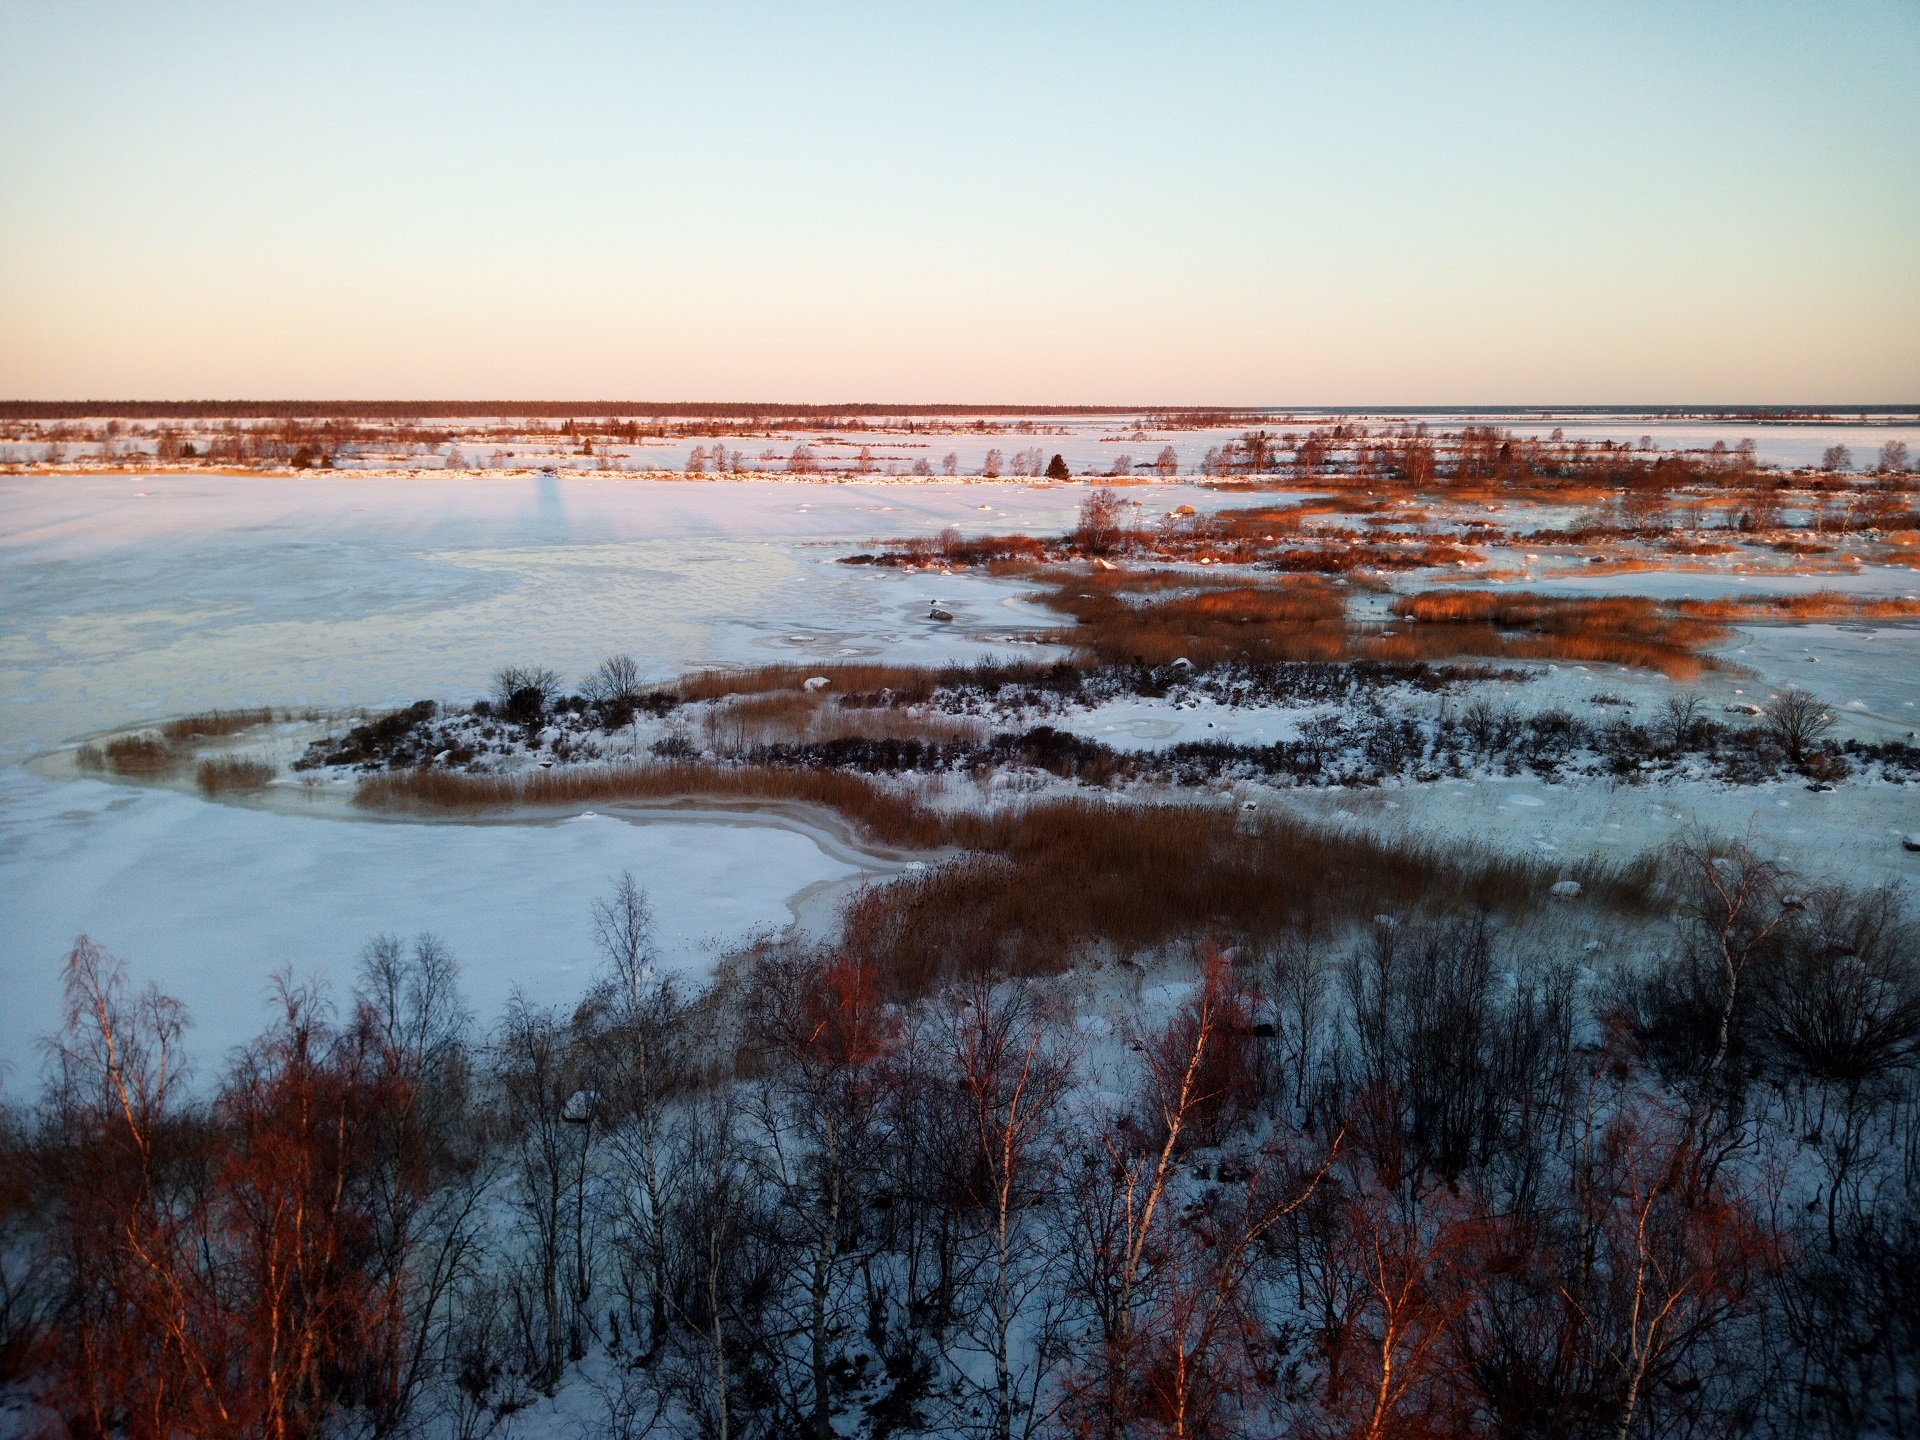 Wintery scenery from the Kvarken Archipelago, where the sea is frosen and the small and narrow islands are covered in snow.